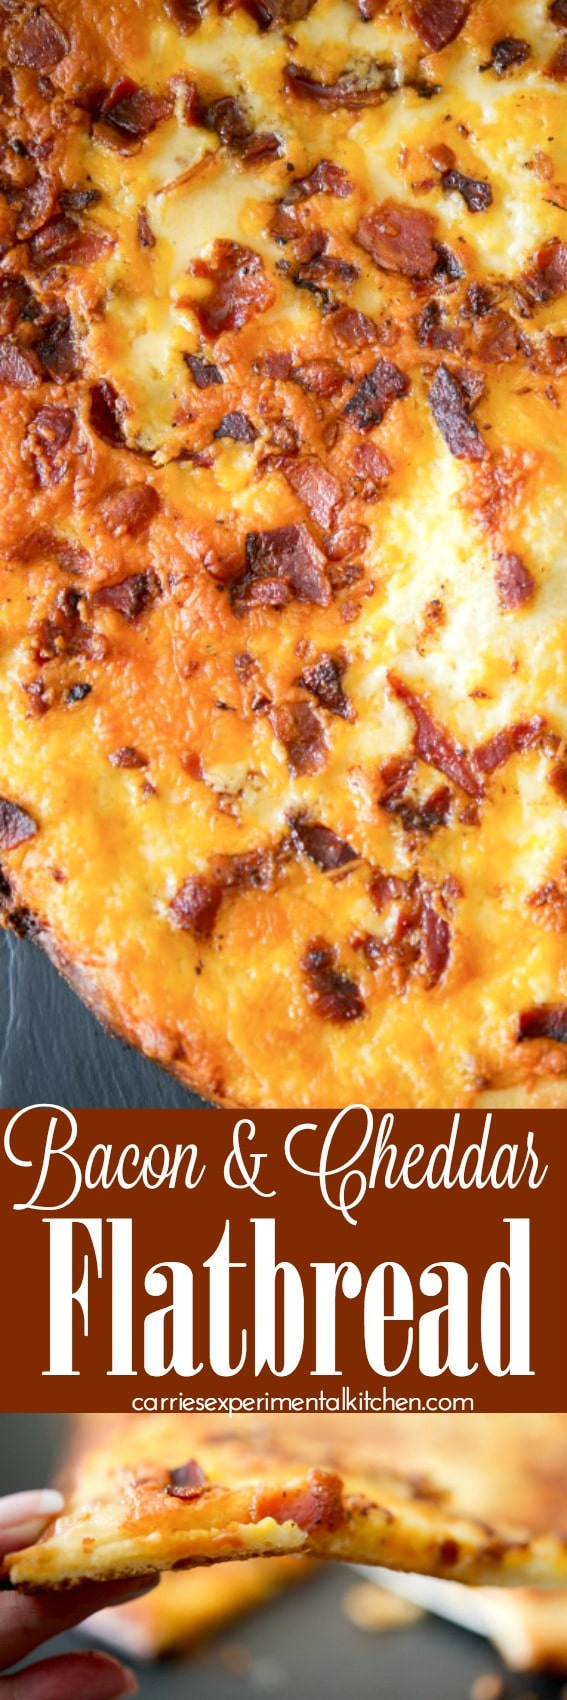 Bacon & Cheddar Flatbread made with your favorite pizza dough, crispy crumbled bacon and shredded sharp Cheddar cheese with a creamy horseradish sauce.  #flatbread #pizza #bacon #cheddar #appetizer #dinner